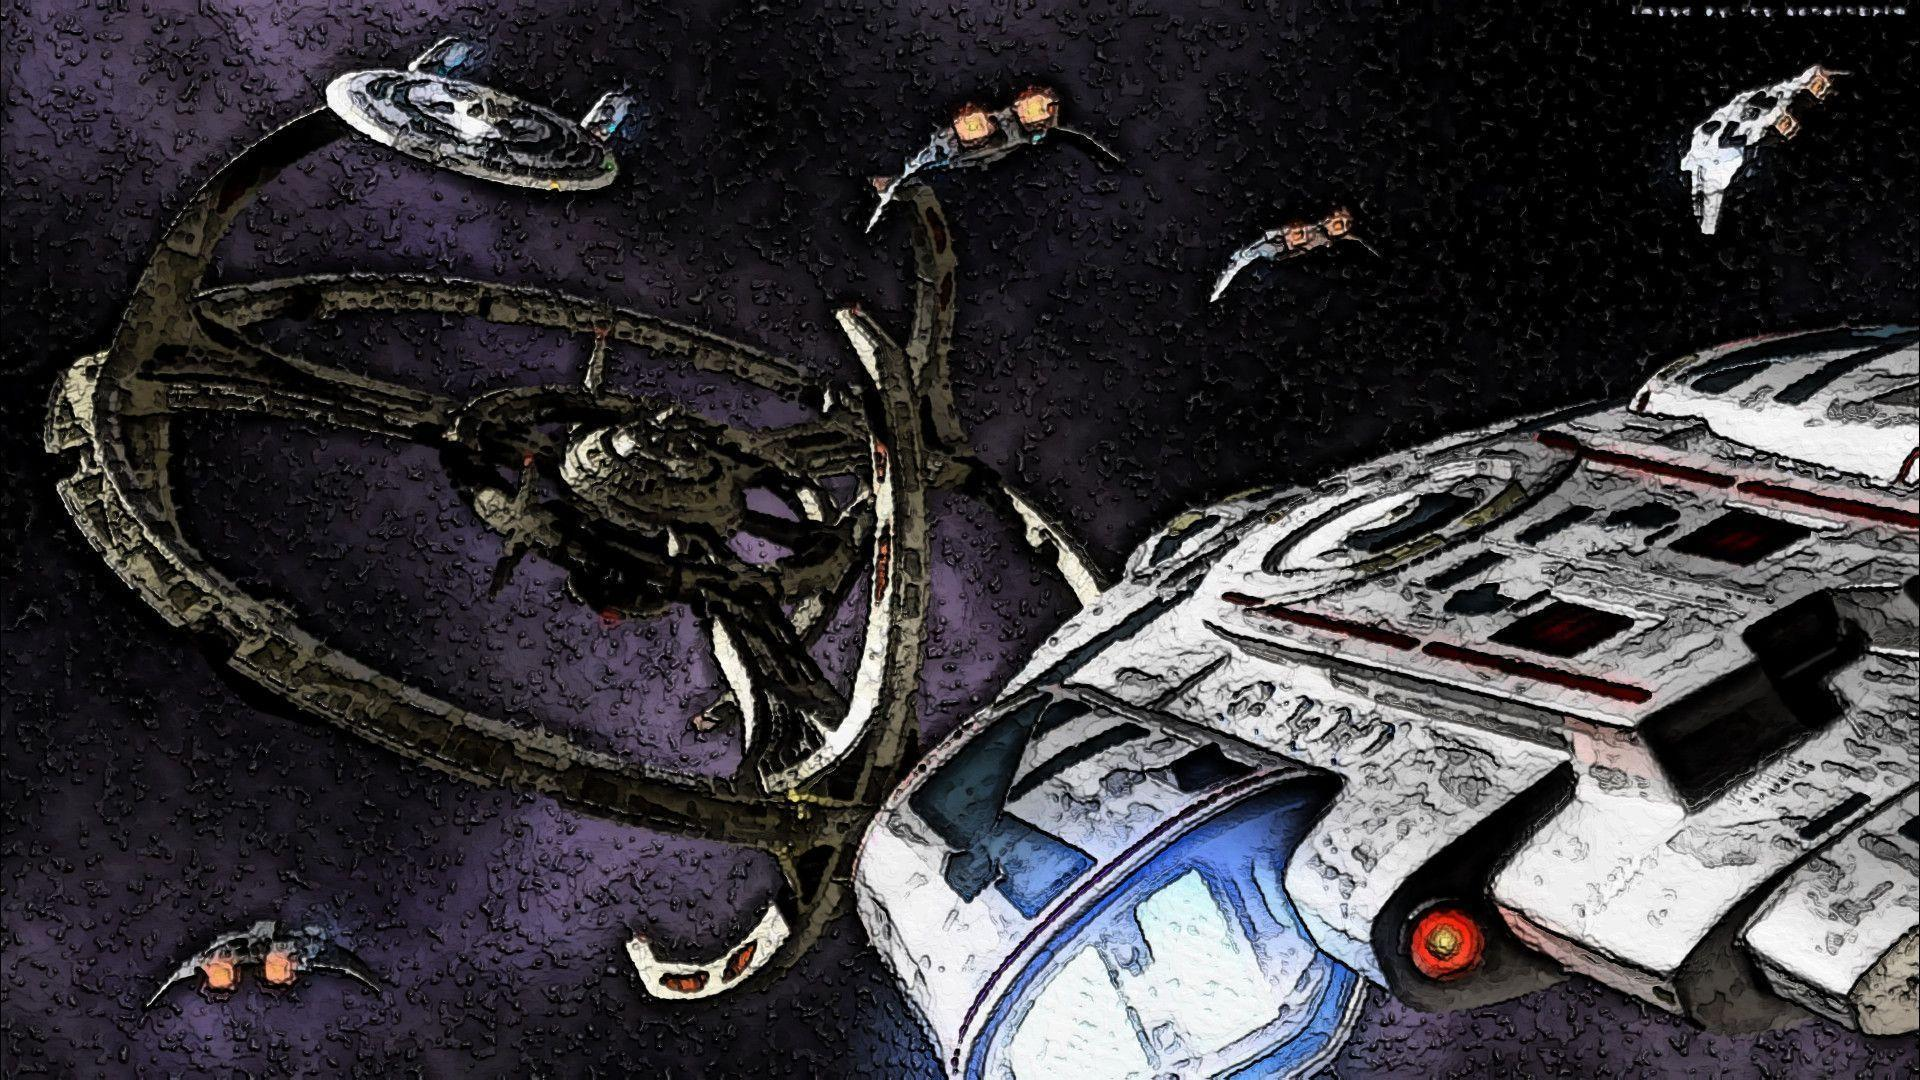 Protecting DS9 Computer Wallpapers, Desktop Backgrounds 1920x1080